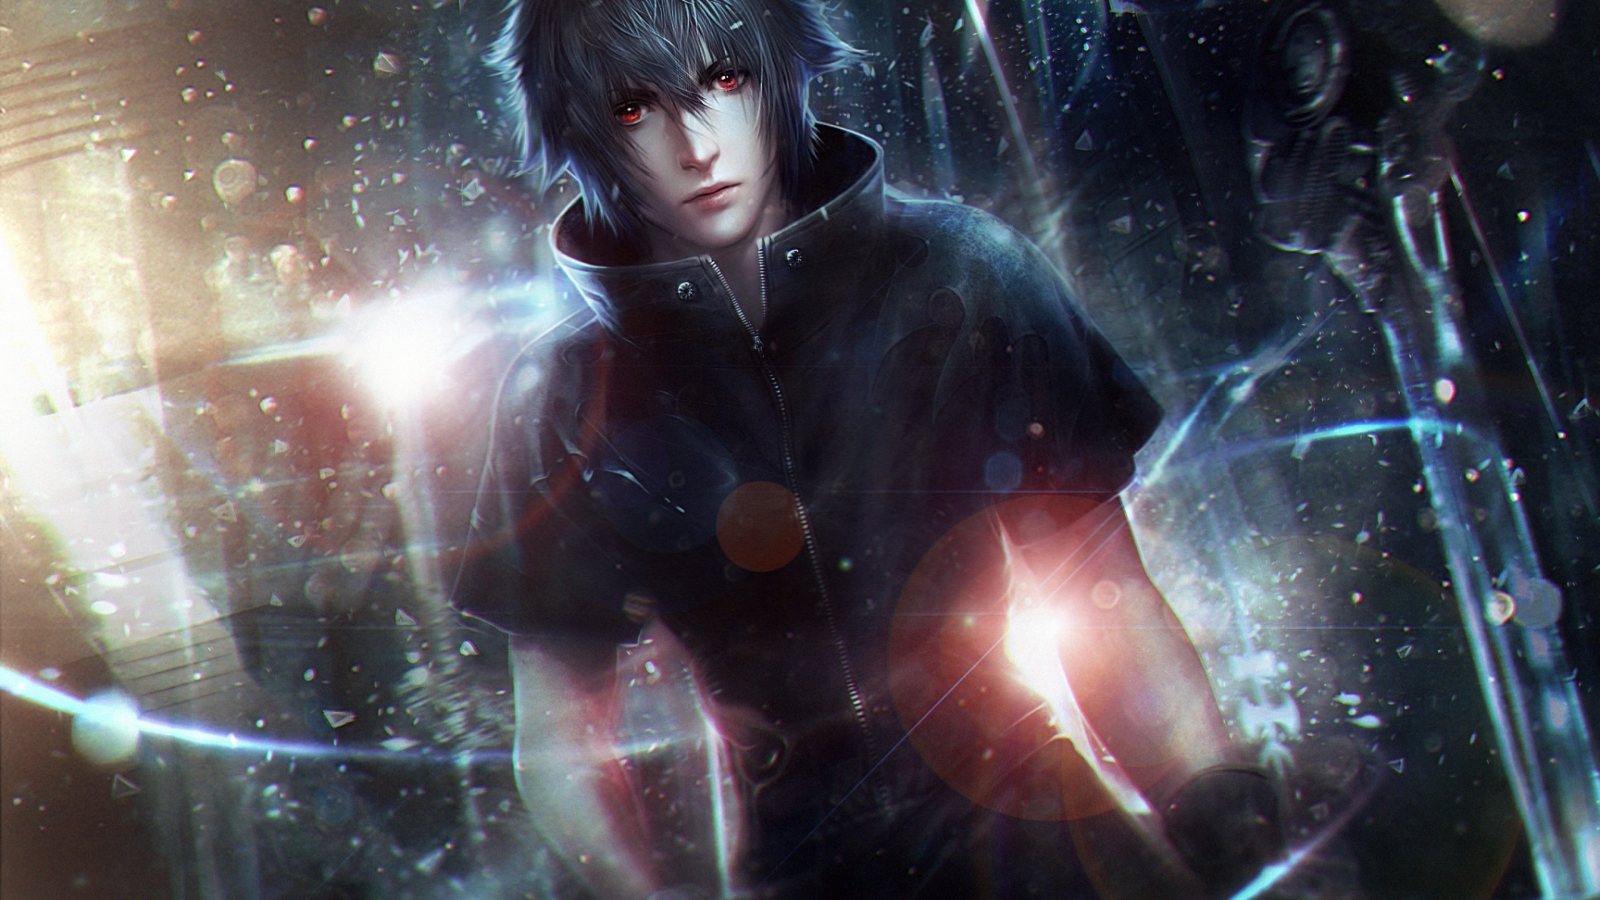 Final Fantasy XV Art Boy Light for 1600 x 900 HDTV resolution